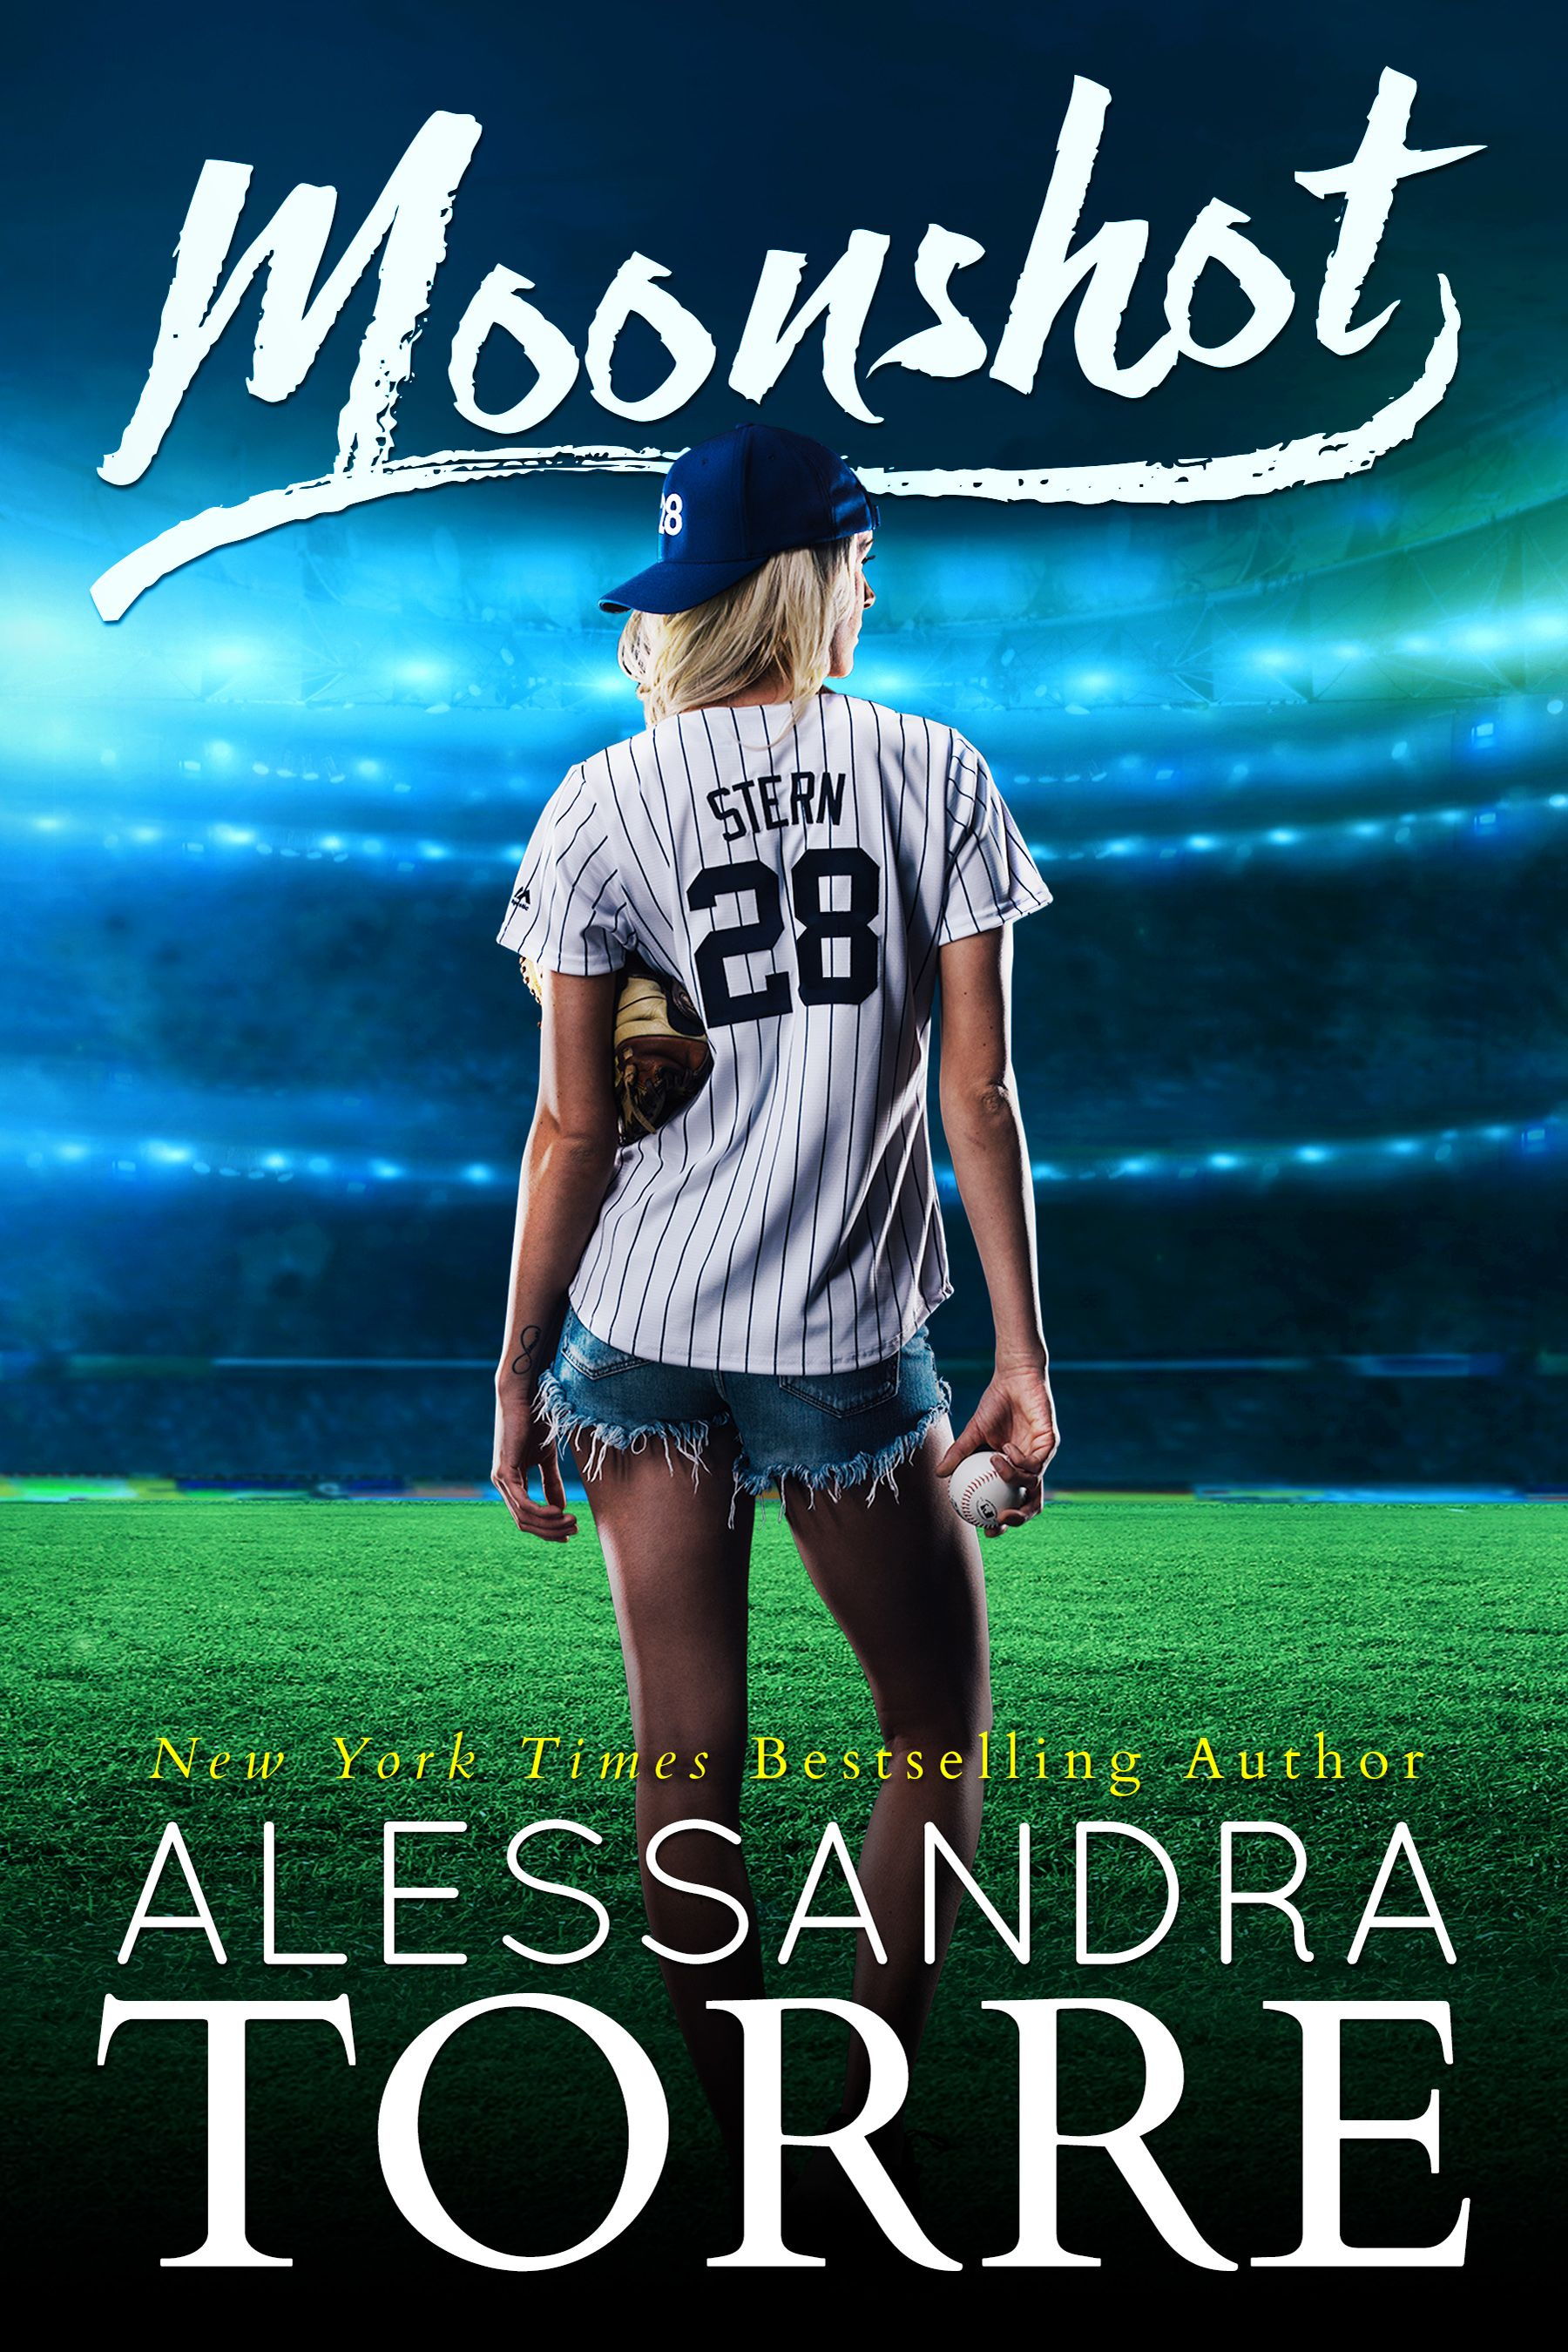 Moonshot by Alessandra Torre – out July 4, 2016